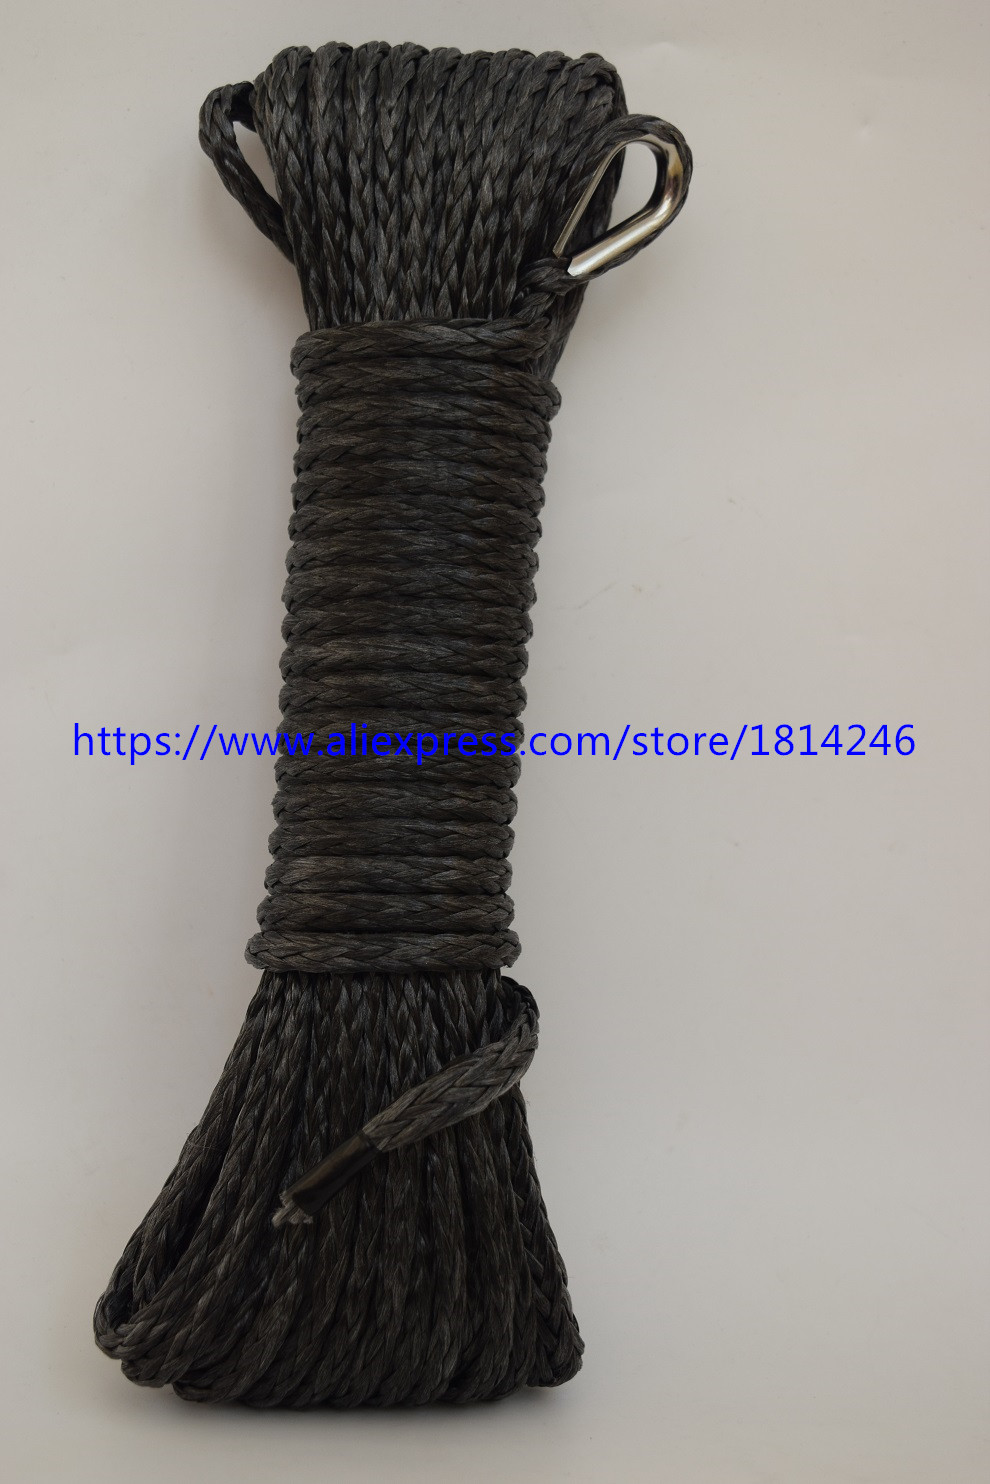 Black 5mm*15m Synthetic Winch Rope,ATV Winch Line,Off Road Rope 4500lbs for Winch Accessaries,Plasma Rope